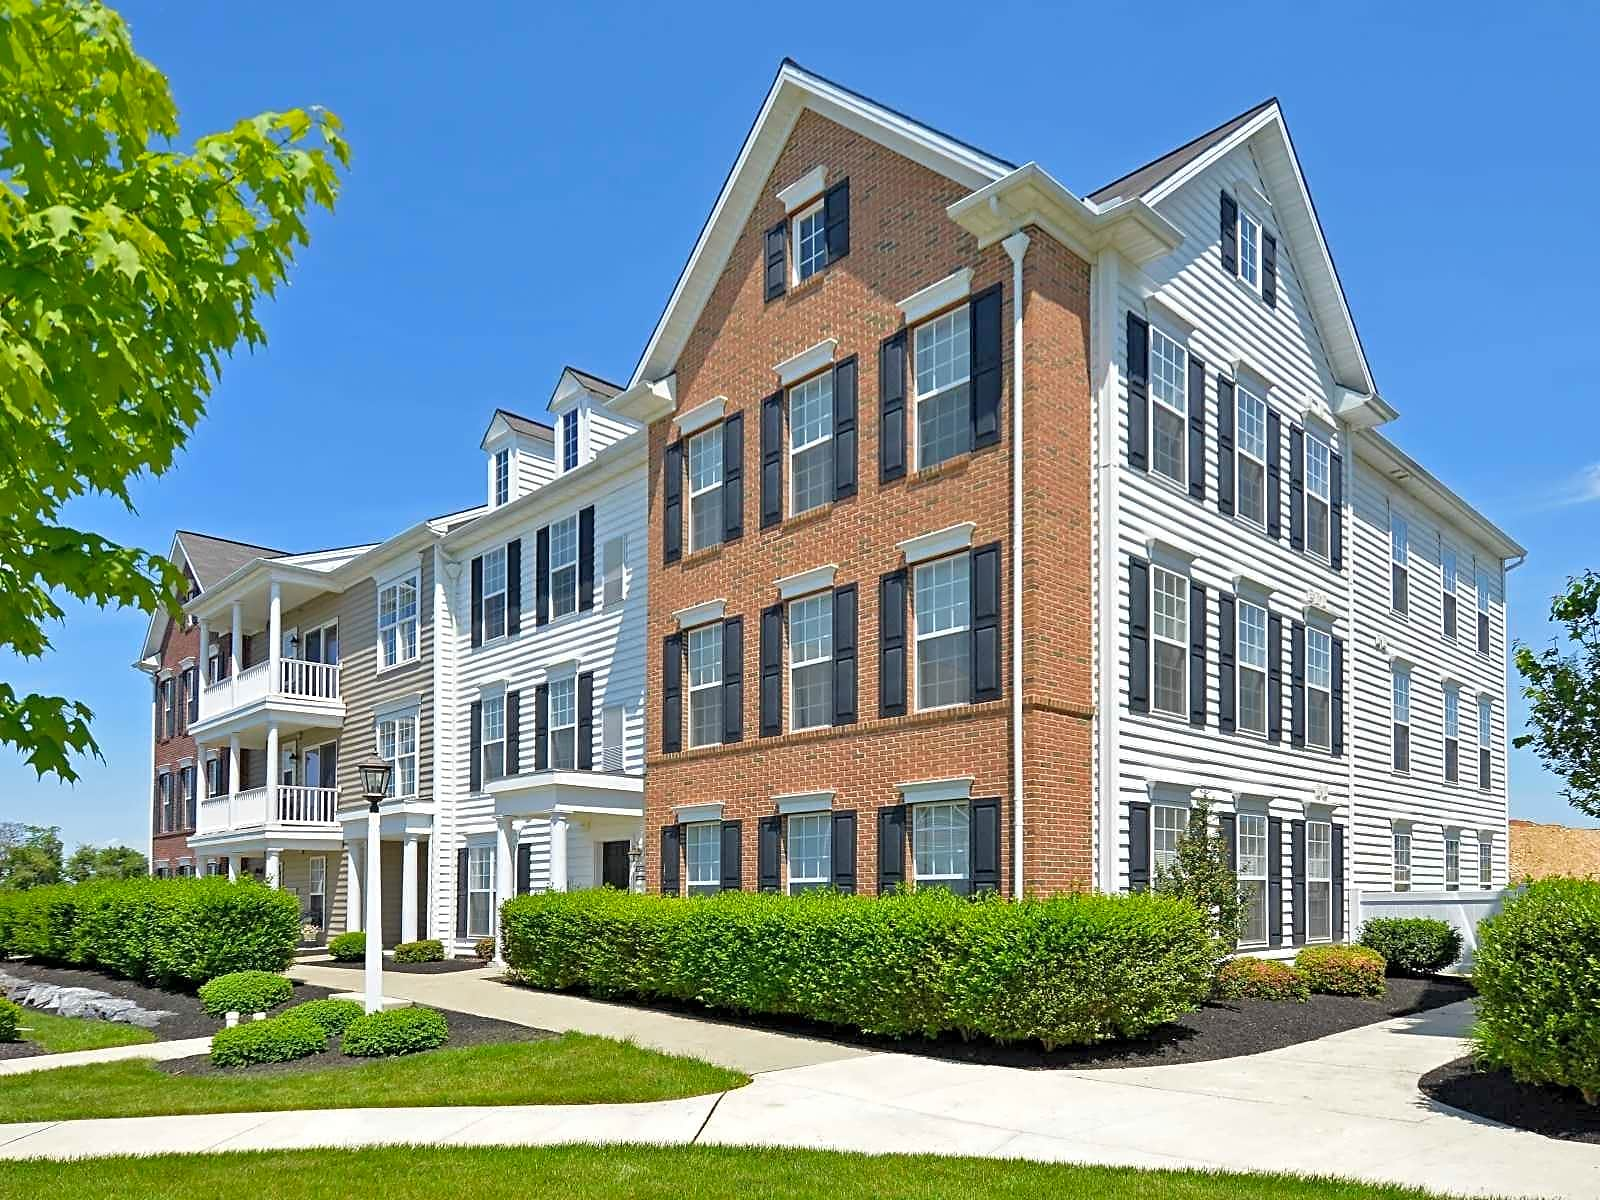 Apartments Near Lebanon Valley The Apartments at Florin Hill for Lebanon Valley College Students in Annville, PA